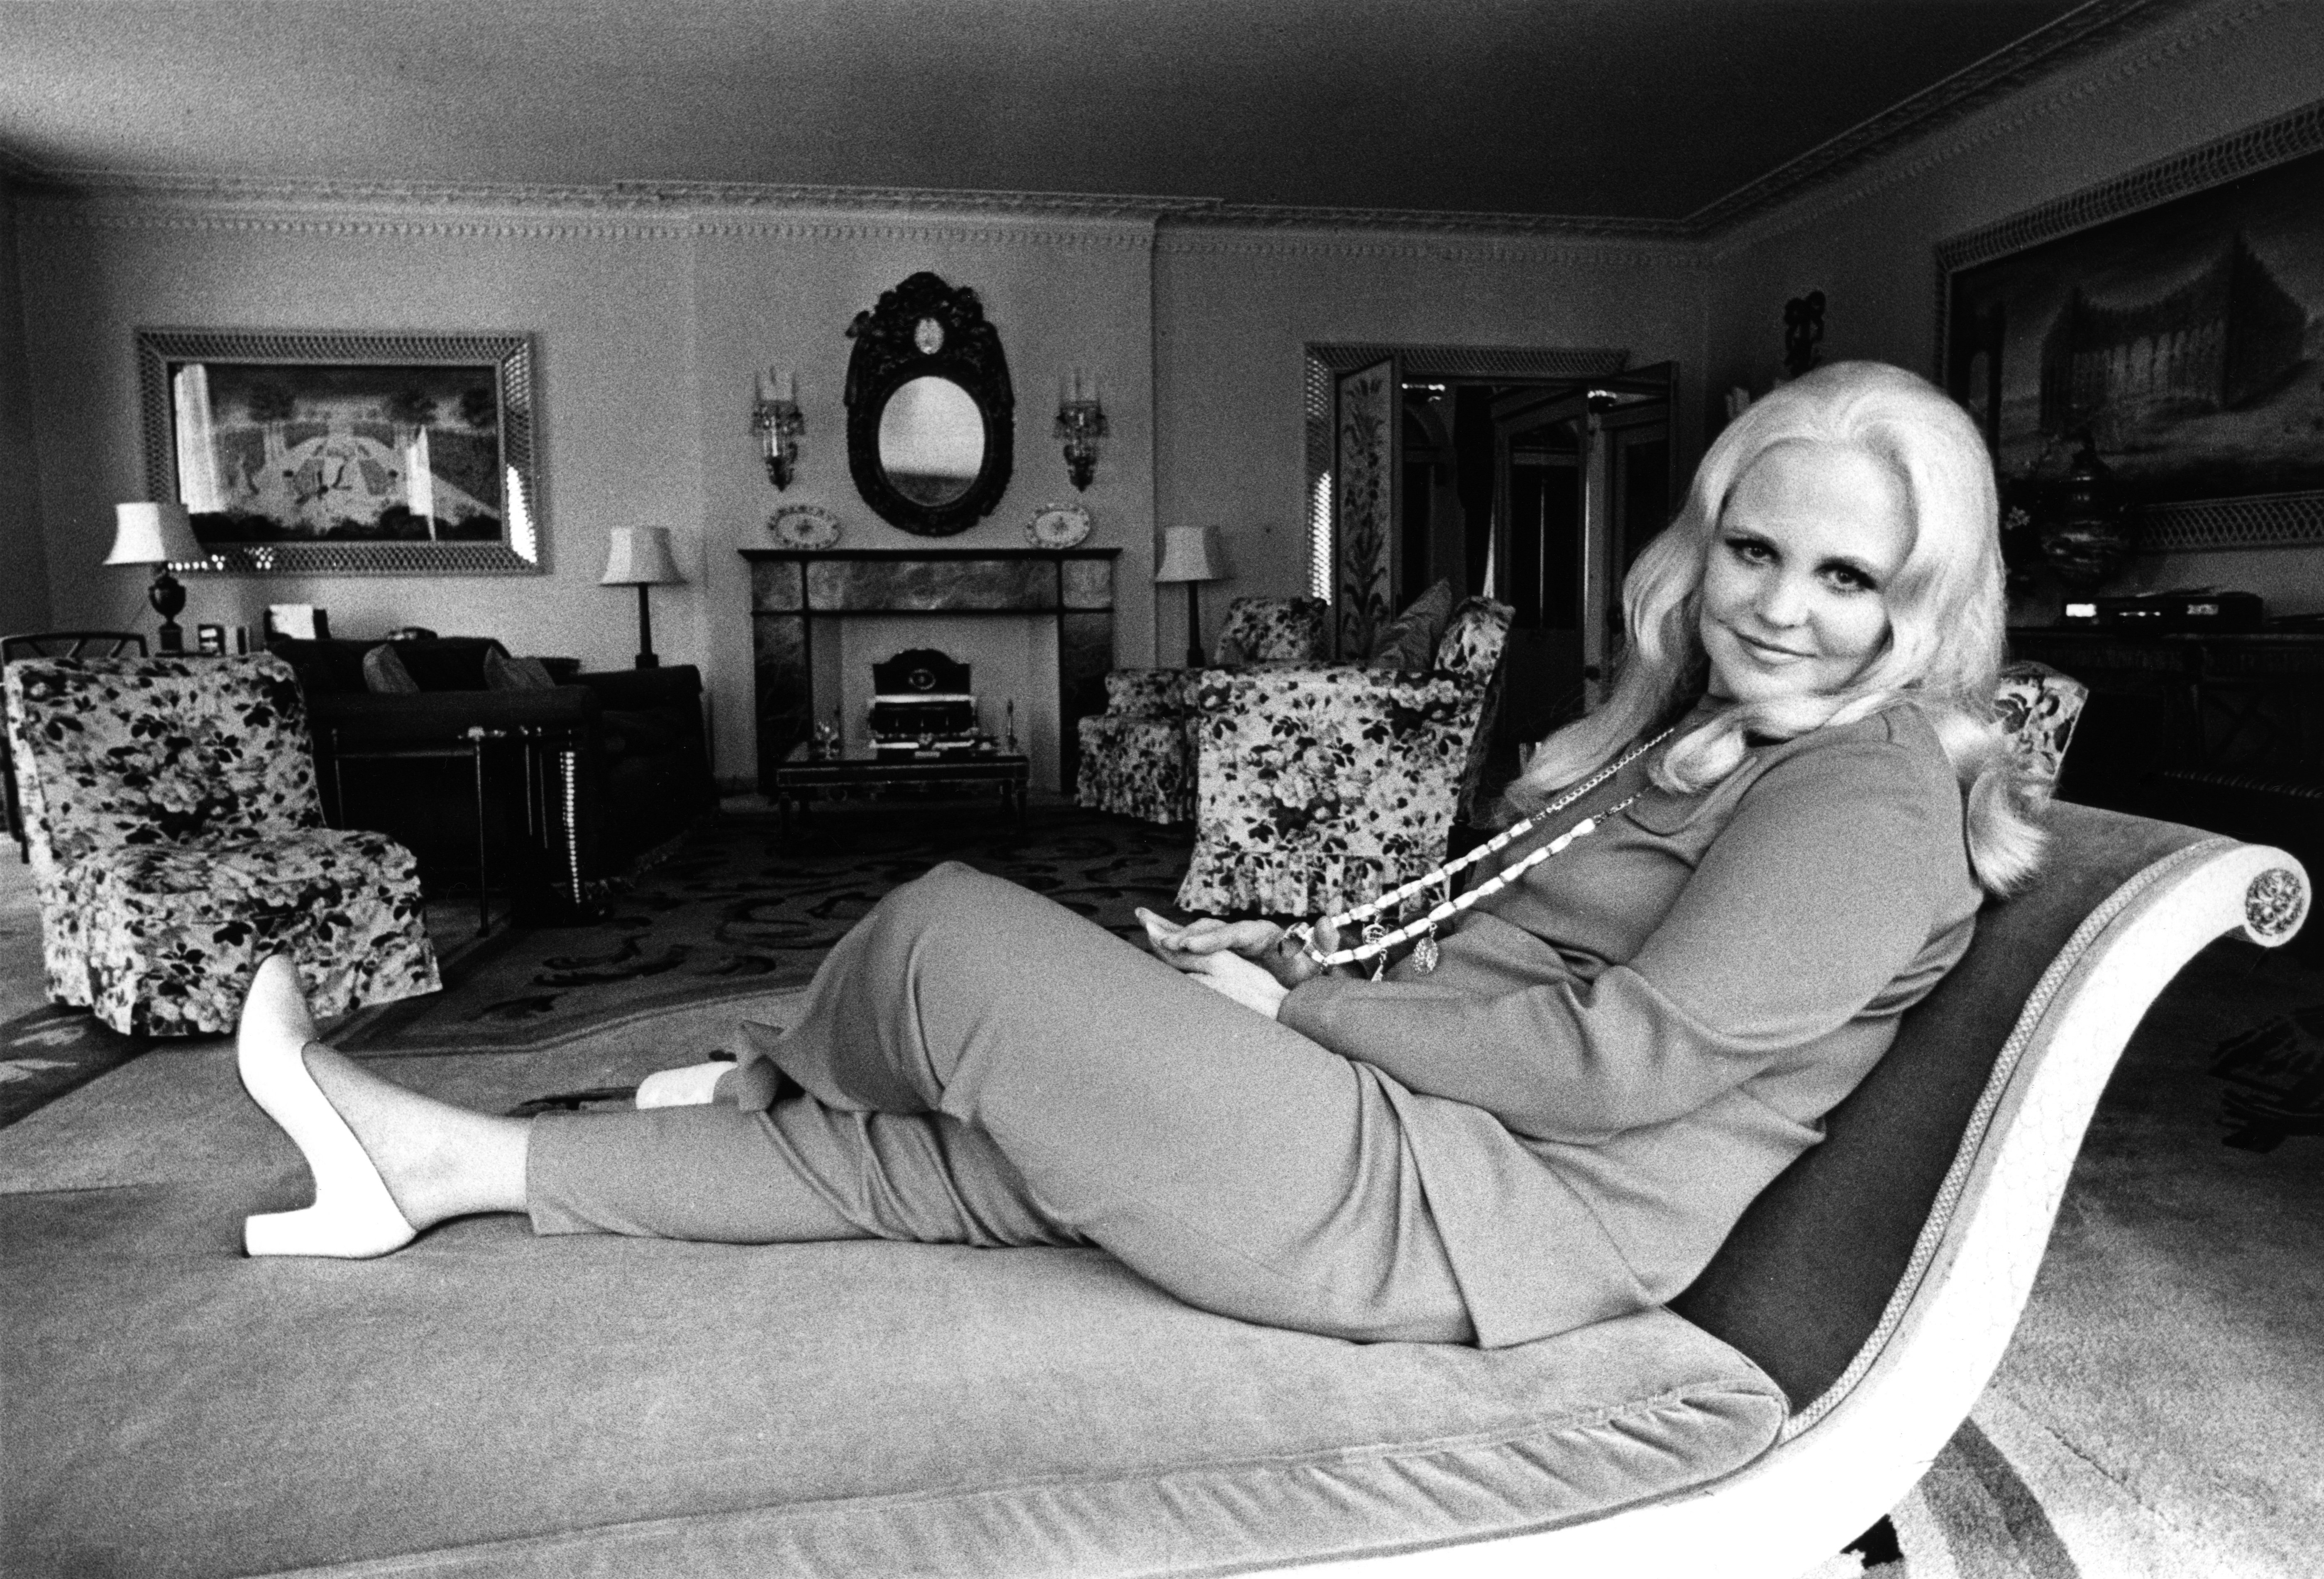 American singer Peggy Lee relcining on a chaise longue before a Royal Albert Hall concert, 1970 | Photo: Getty Images